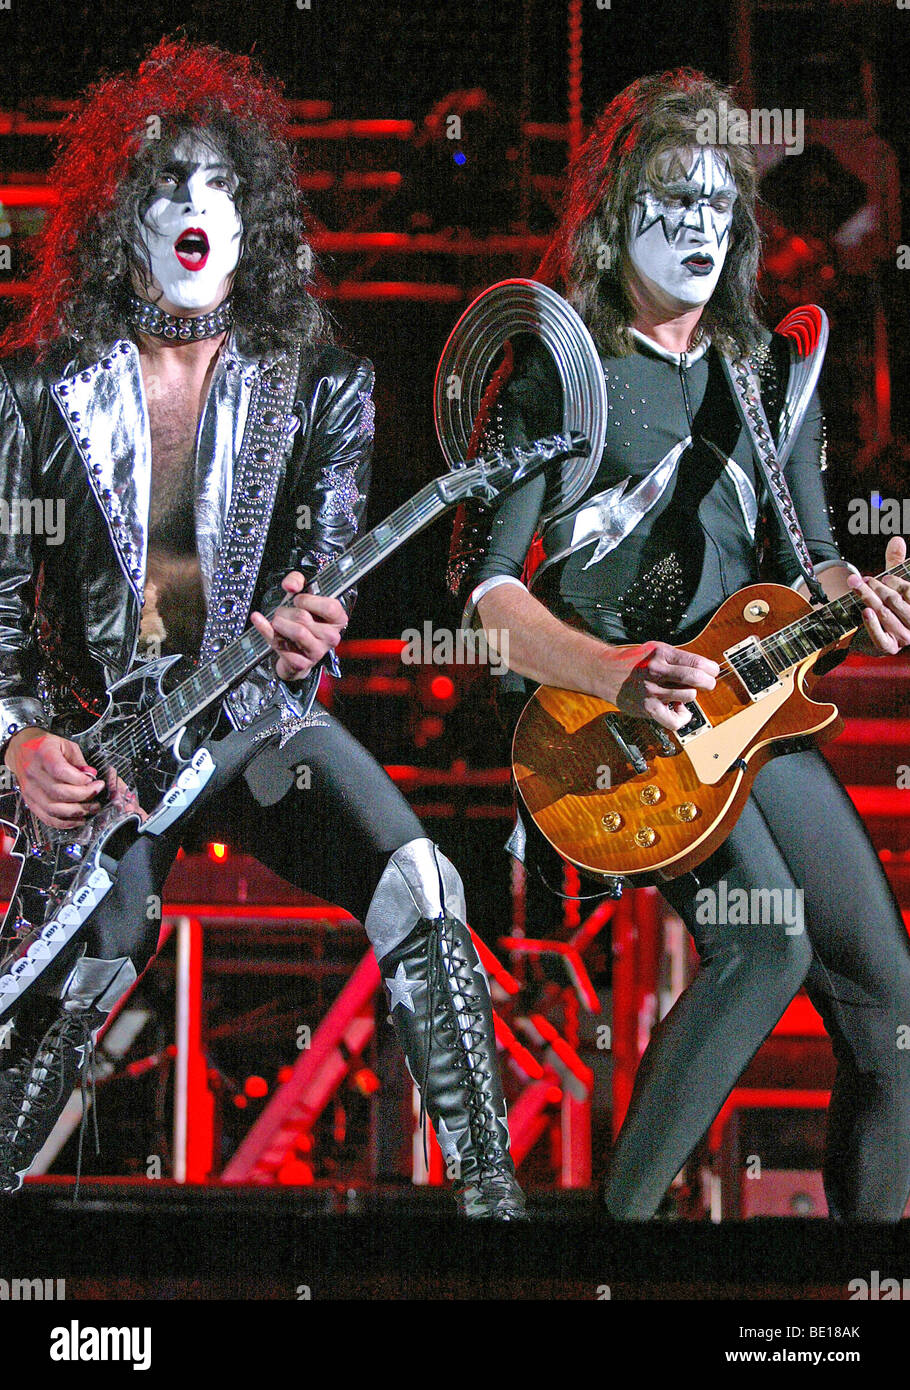 KISS - US Heavy Metal group in 2003 - Stock Image